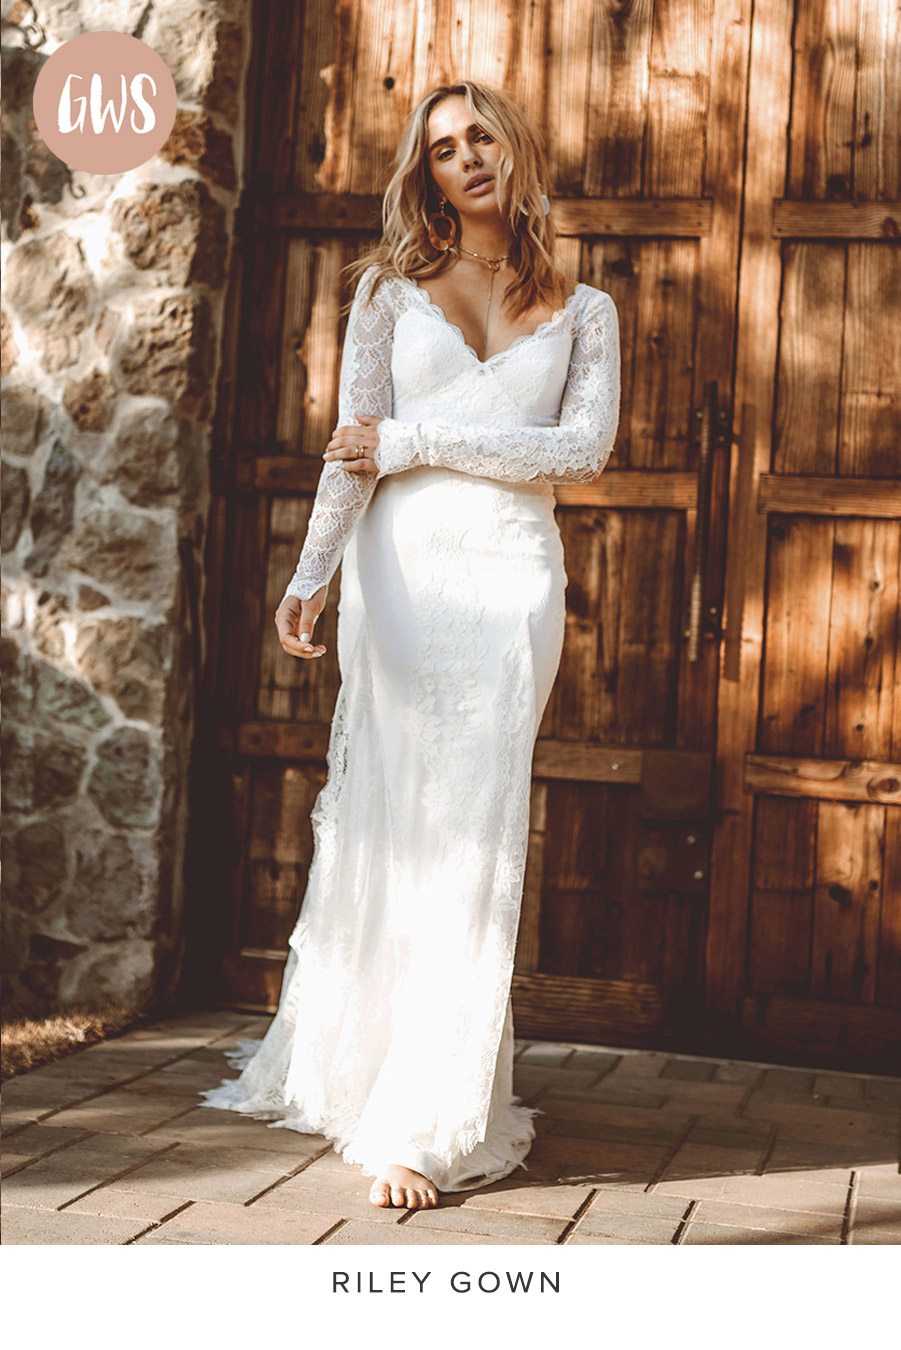 Riley Gown